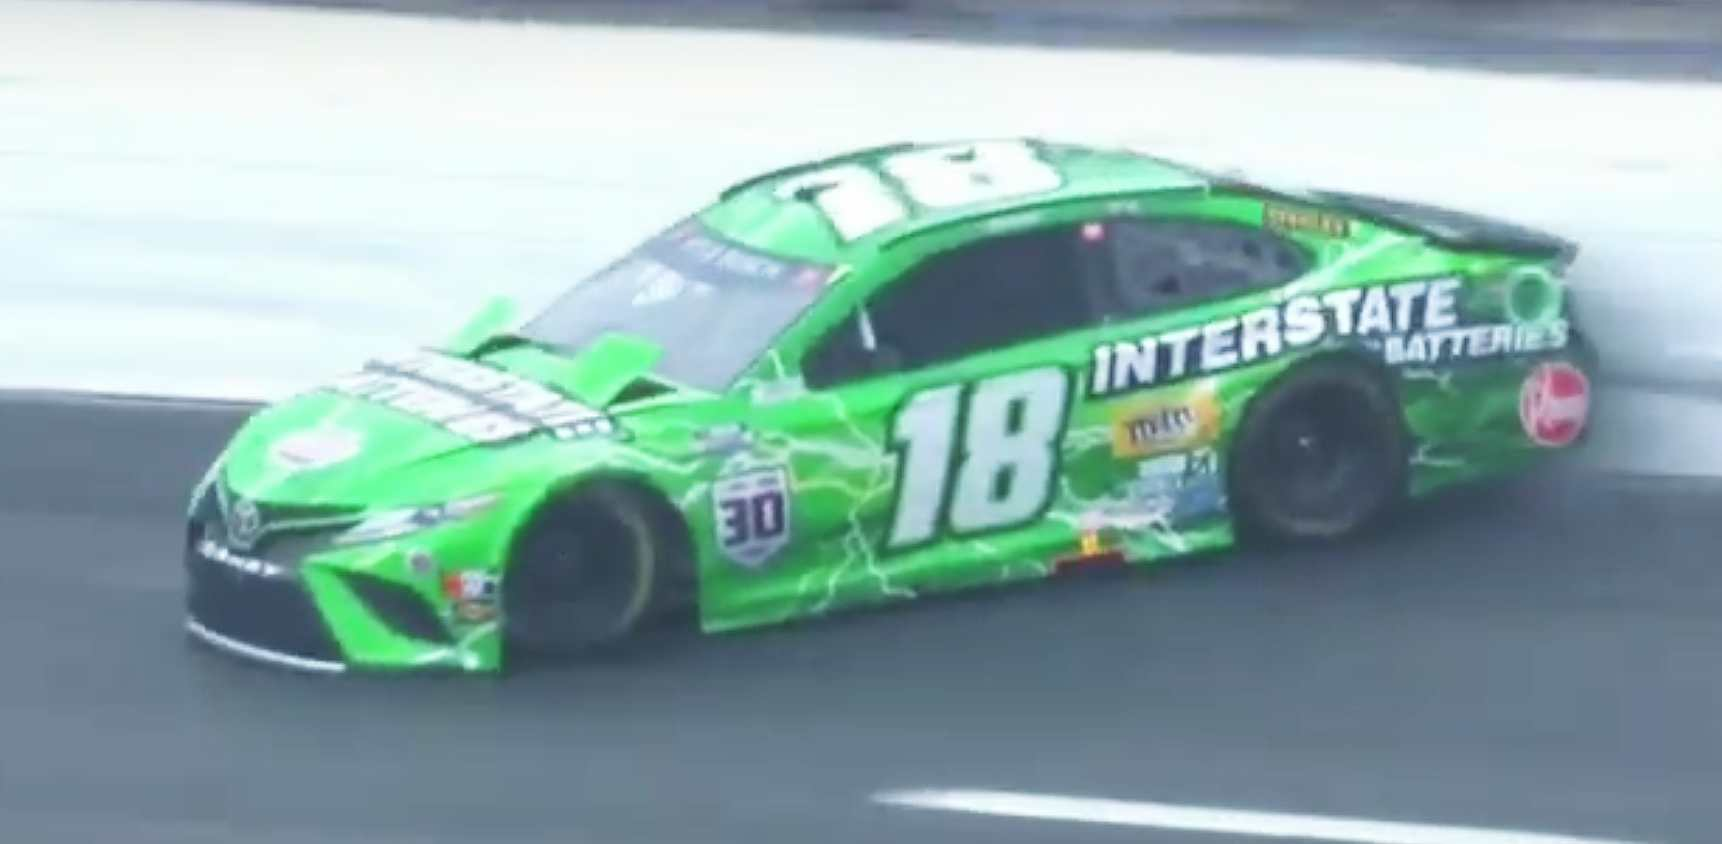 NASCAR driver Kyle Busch crashes in rain at New Hampshire Motor Speedway